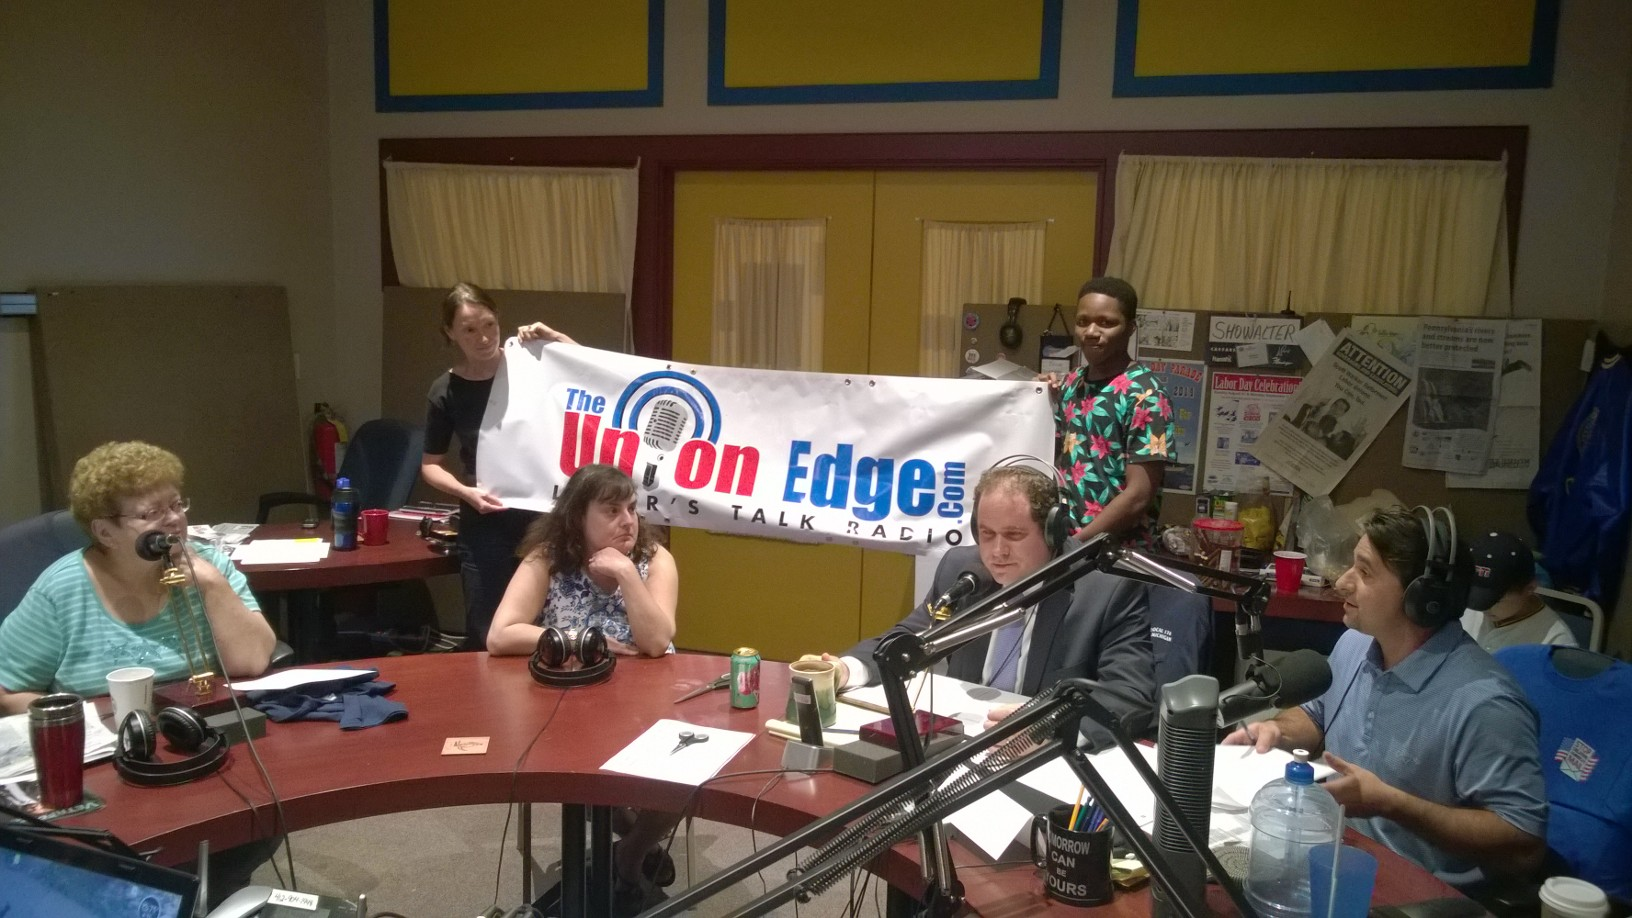 The Union Edge Talk Radio Interview of One World Blue.jpg